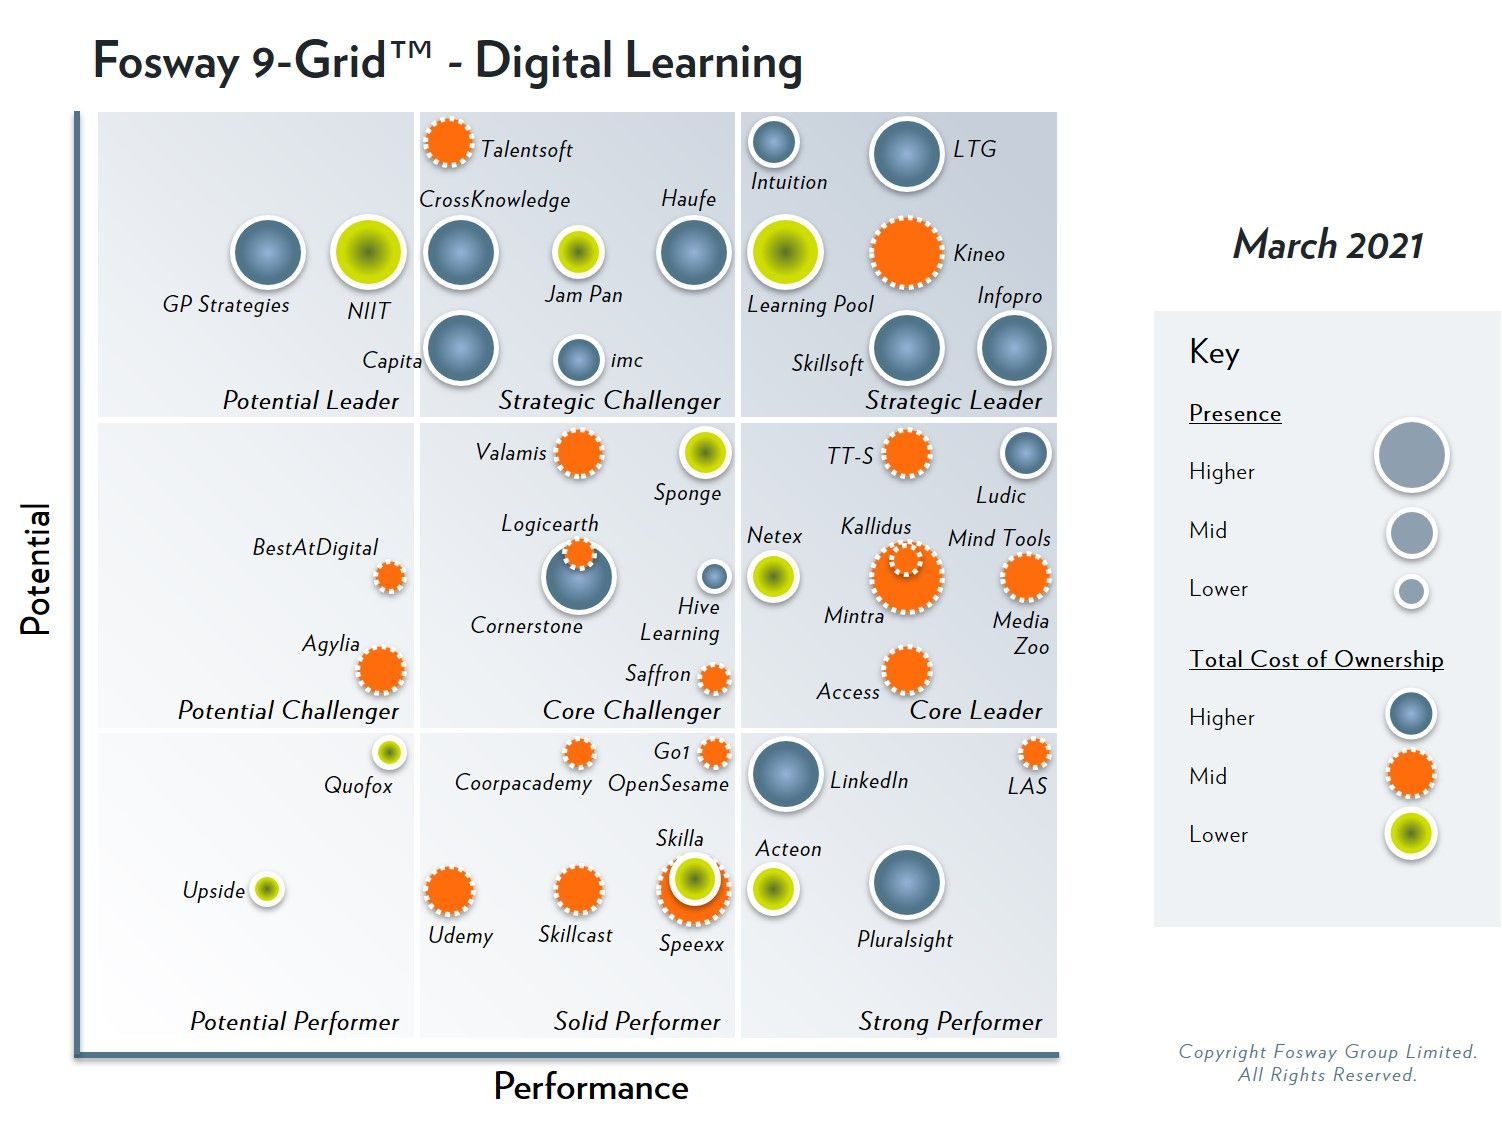 This is an image:Learning Technologies Group reinforces position as Strategic Leader in Digital Learning in 2021 Fosway 9-Grid™